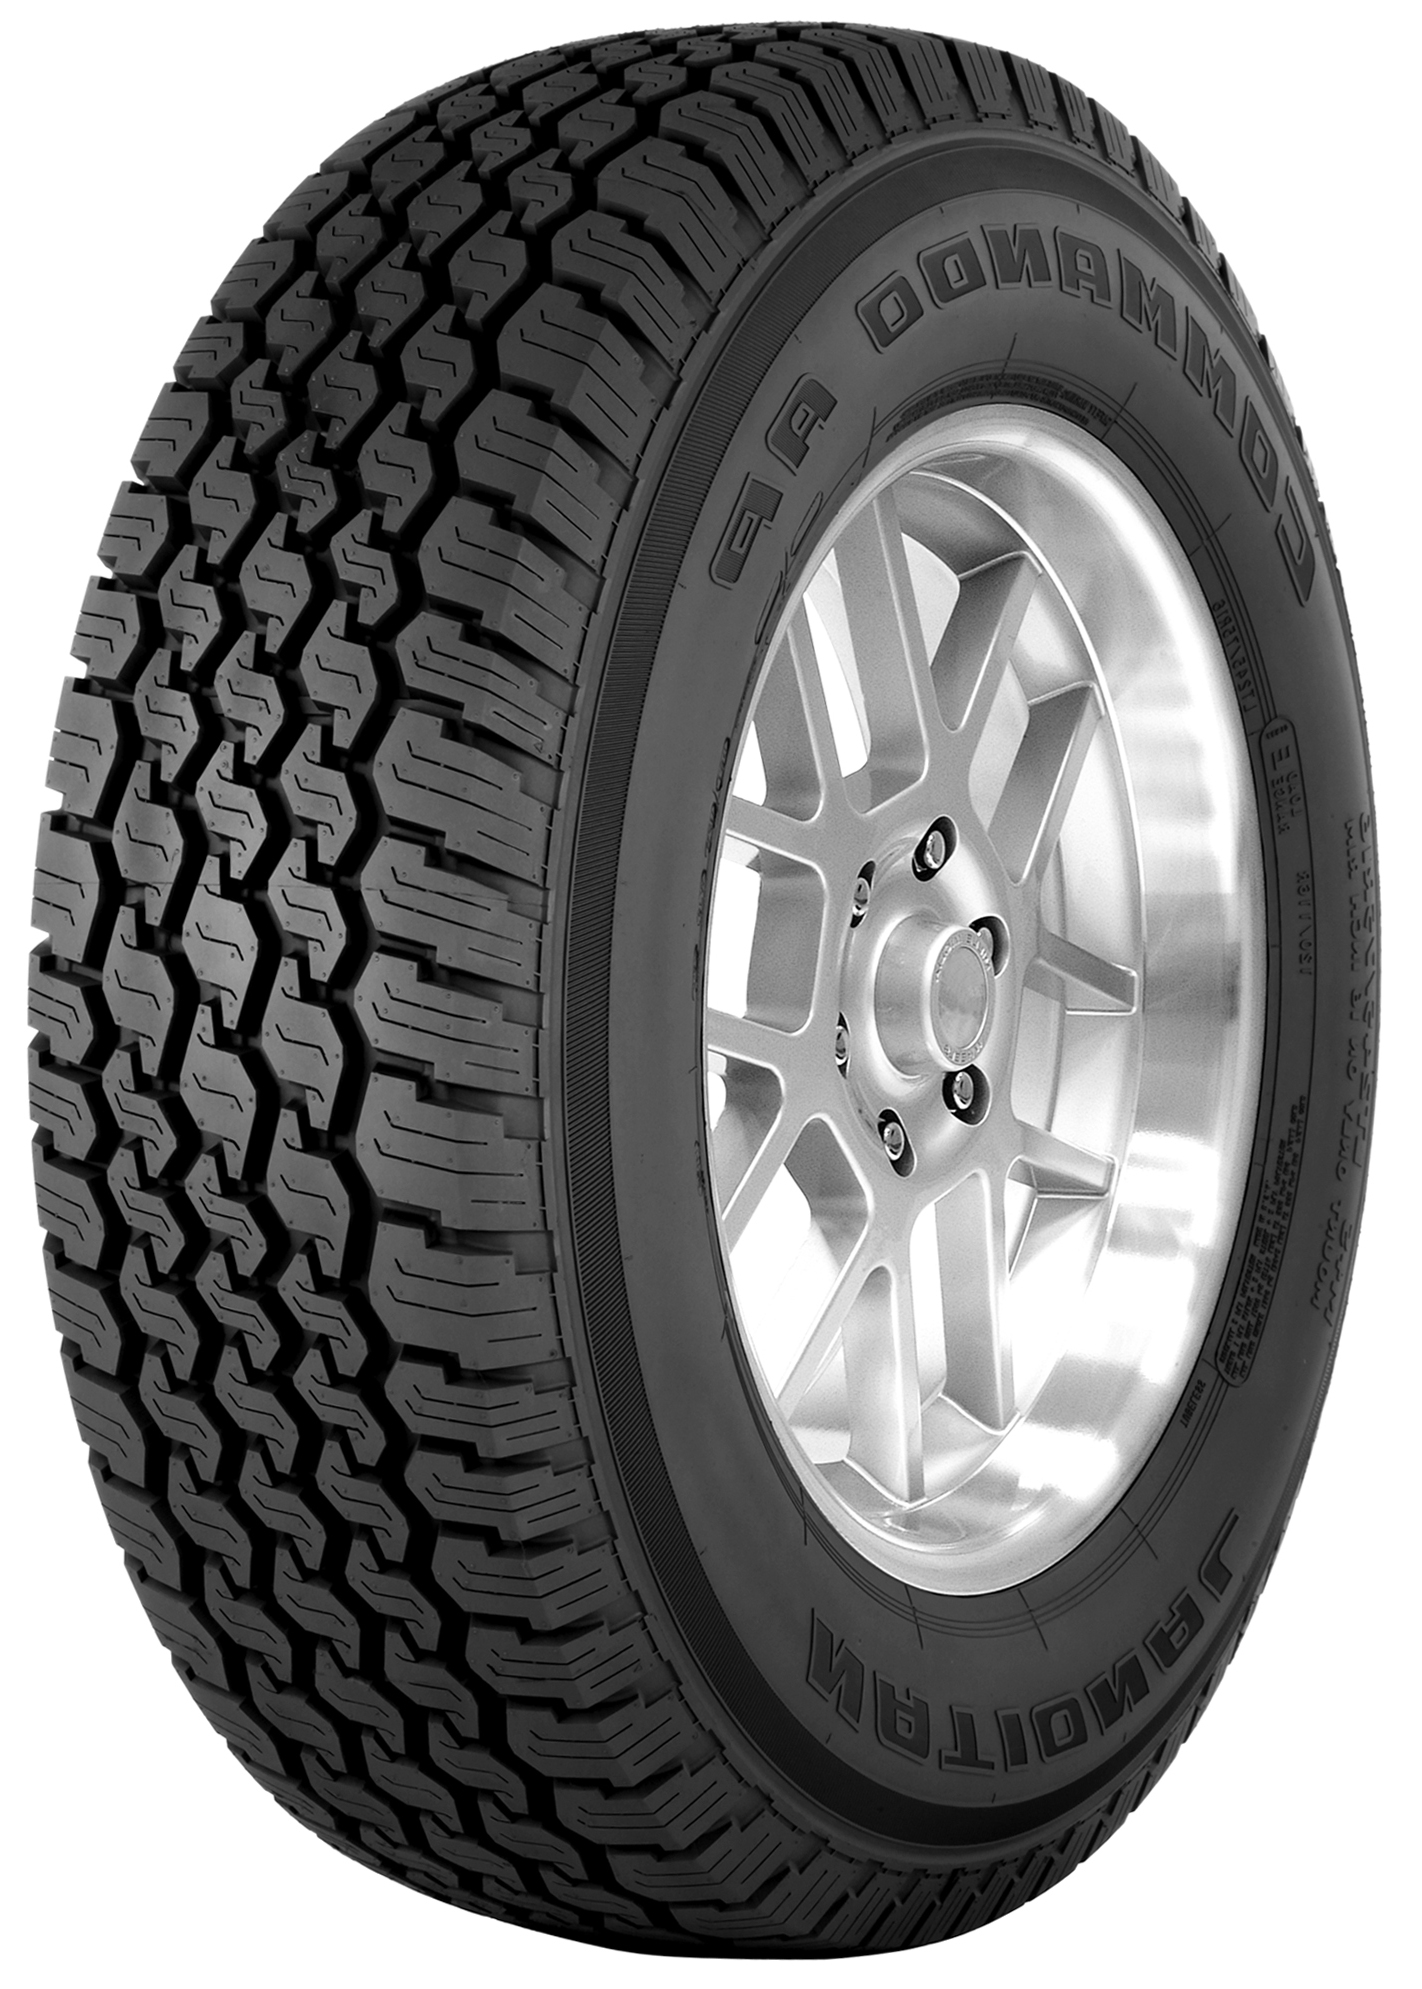 National Tire And Wheel >> Benavidez Tires Wheels Quality Tire Sales And Woodburn Oregon